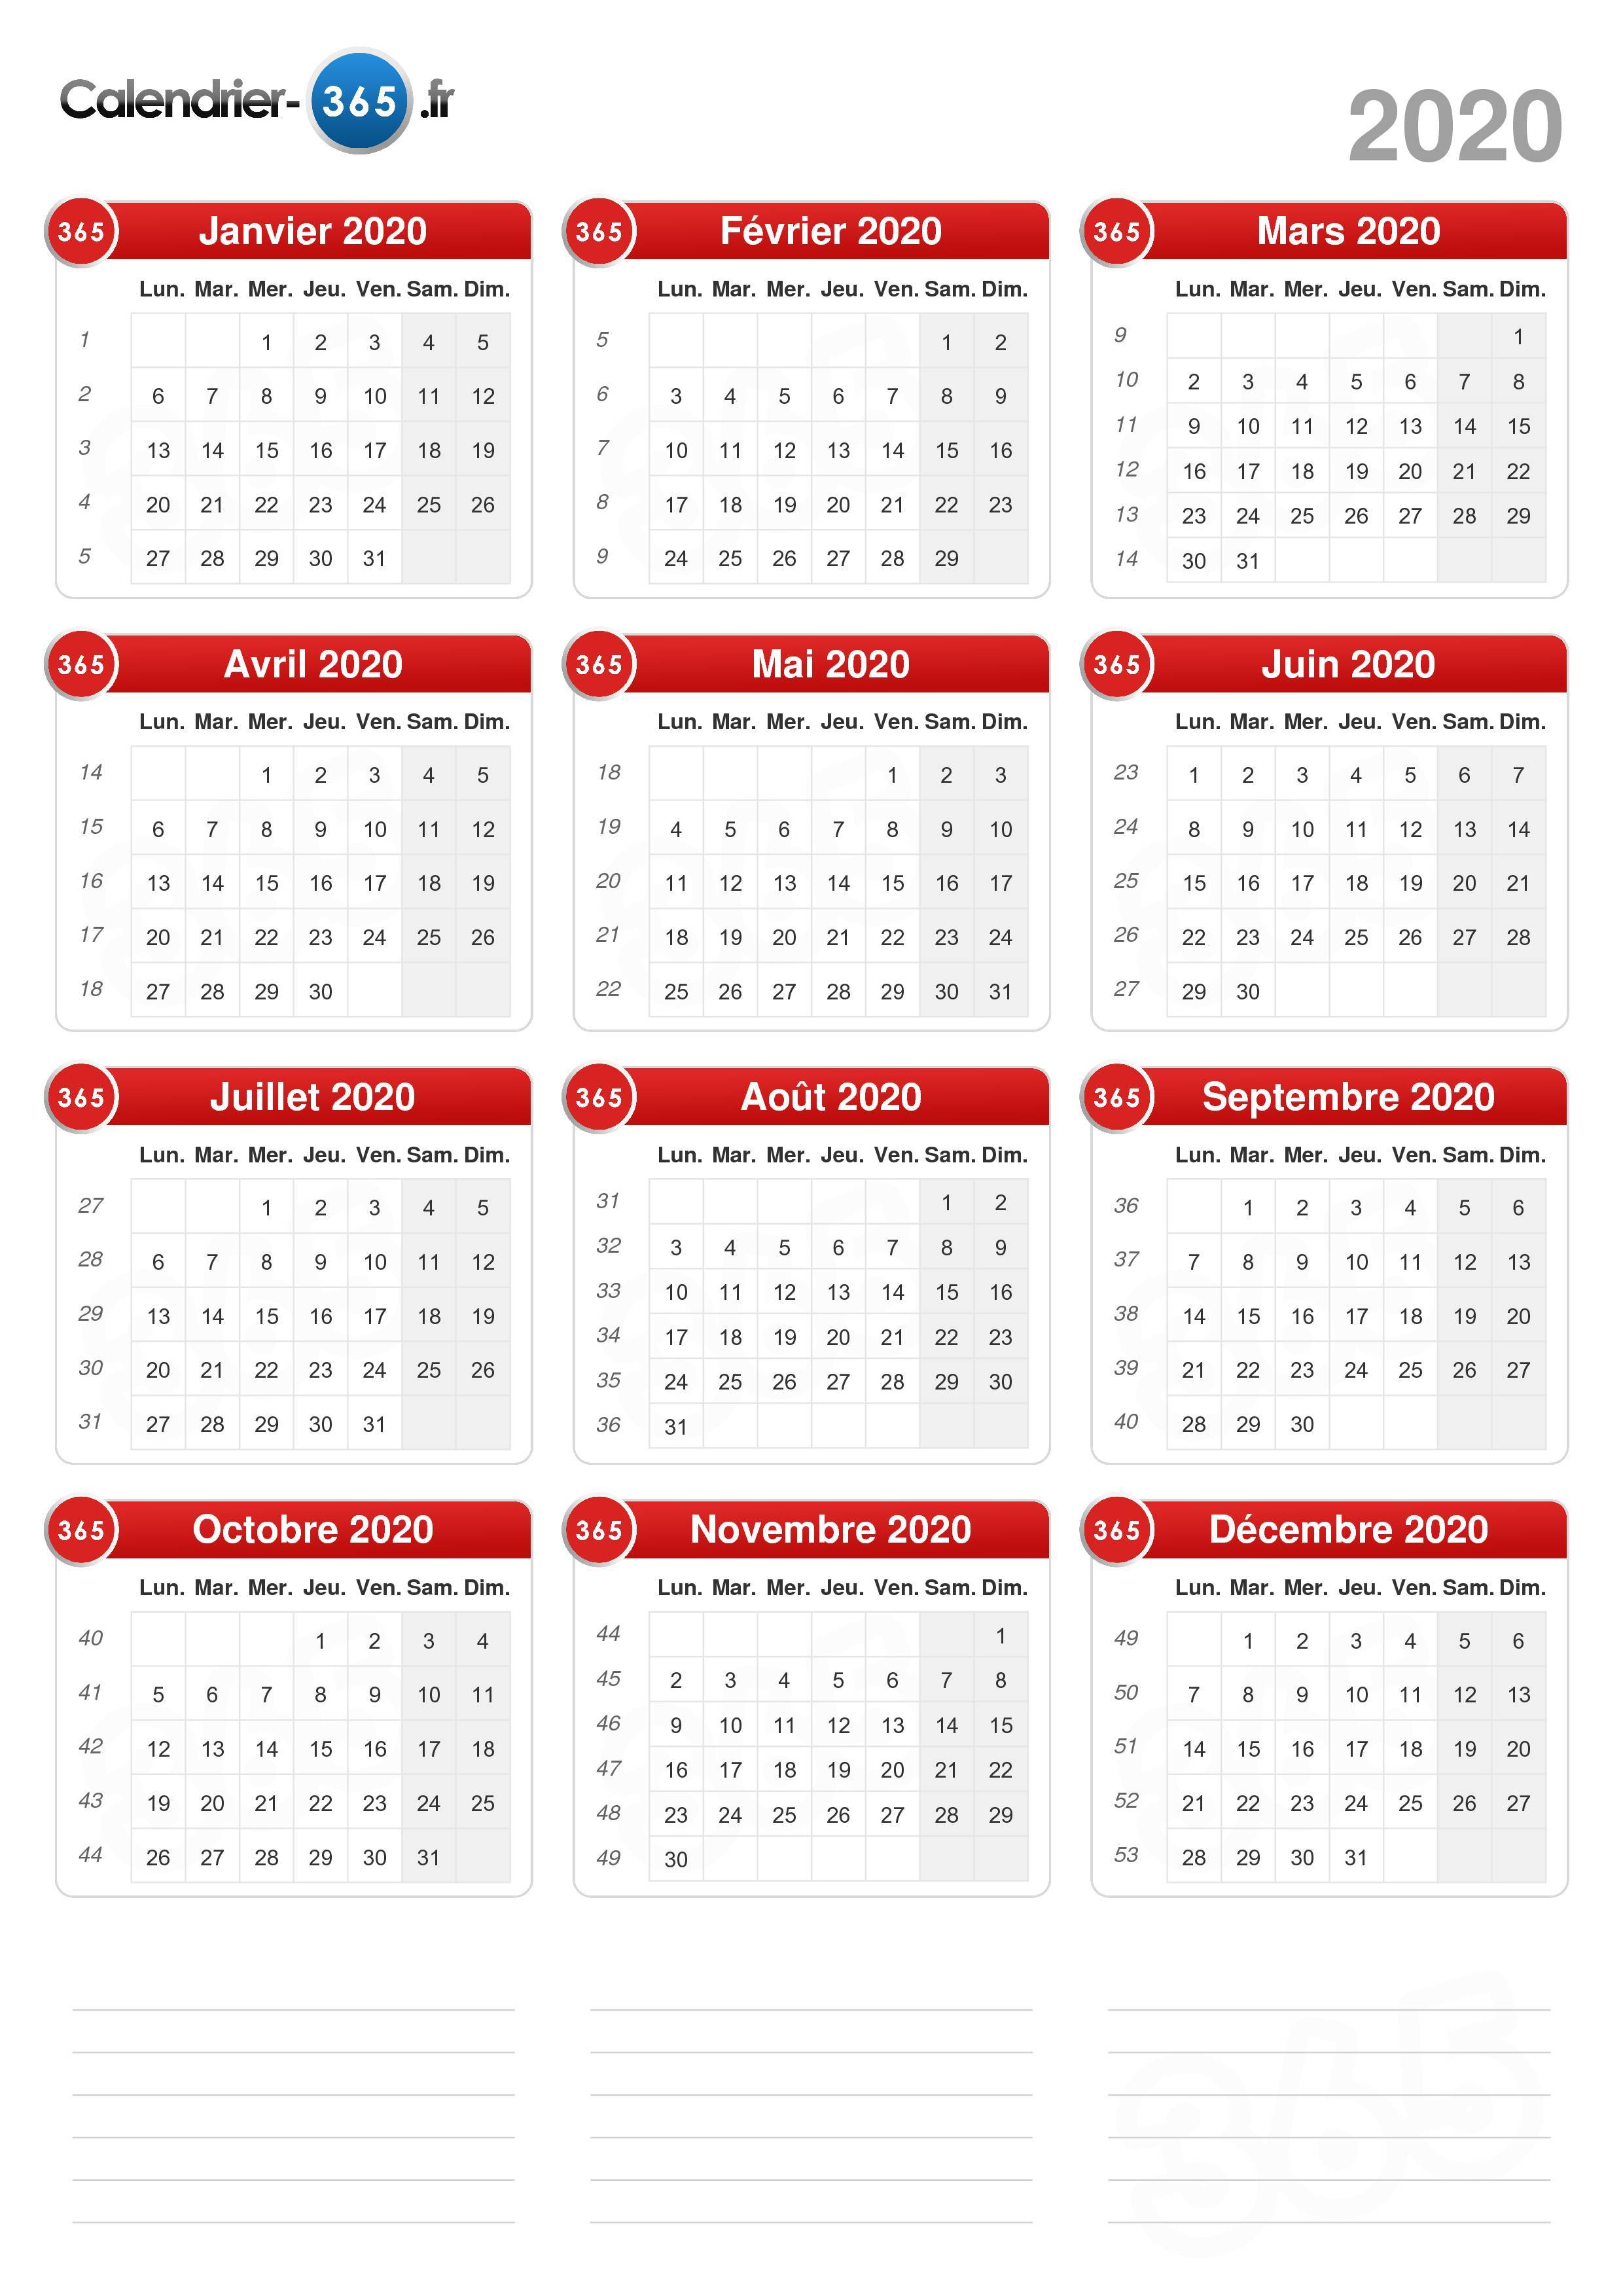 Calendrier Semaines 2020.Calendrier 2020